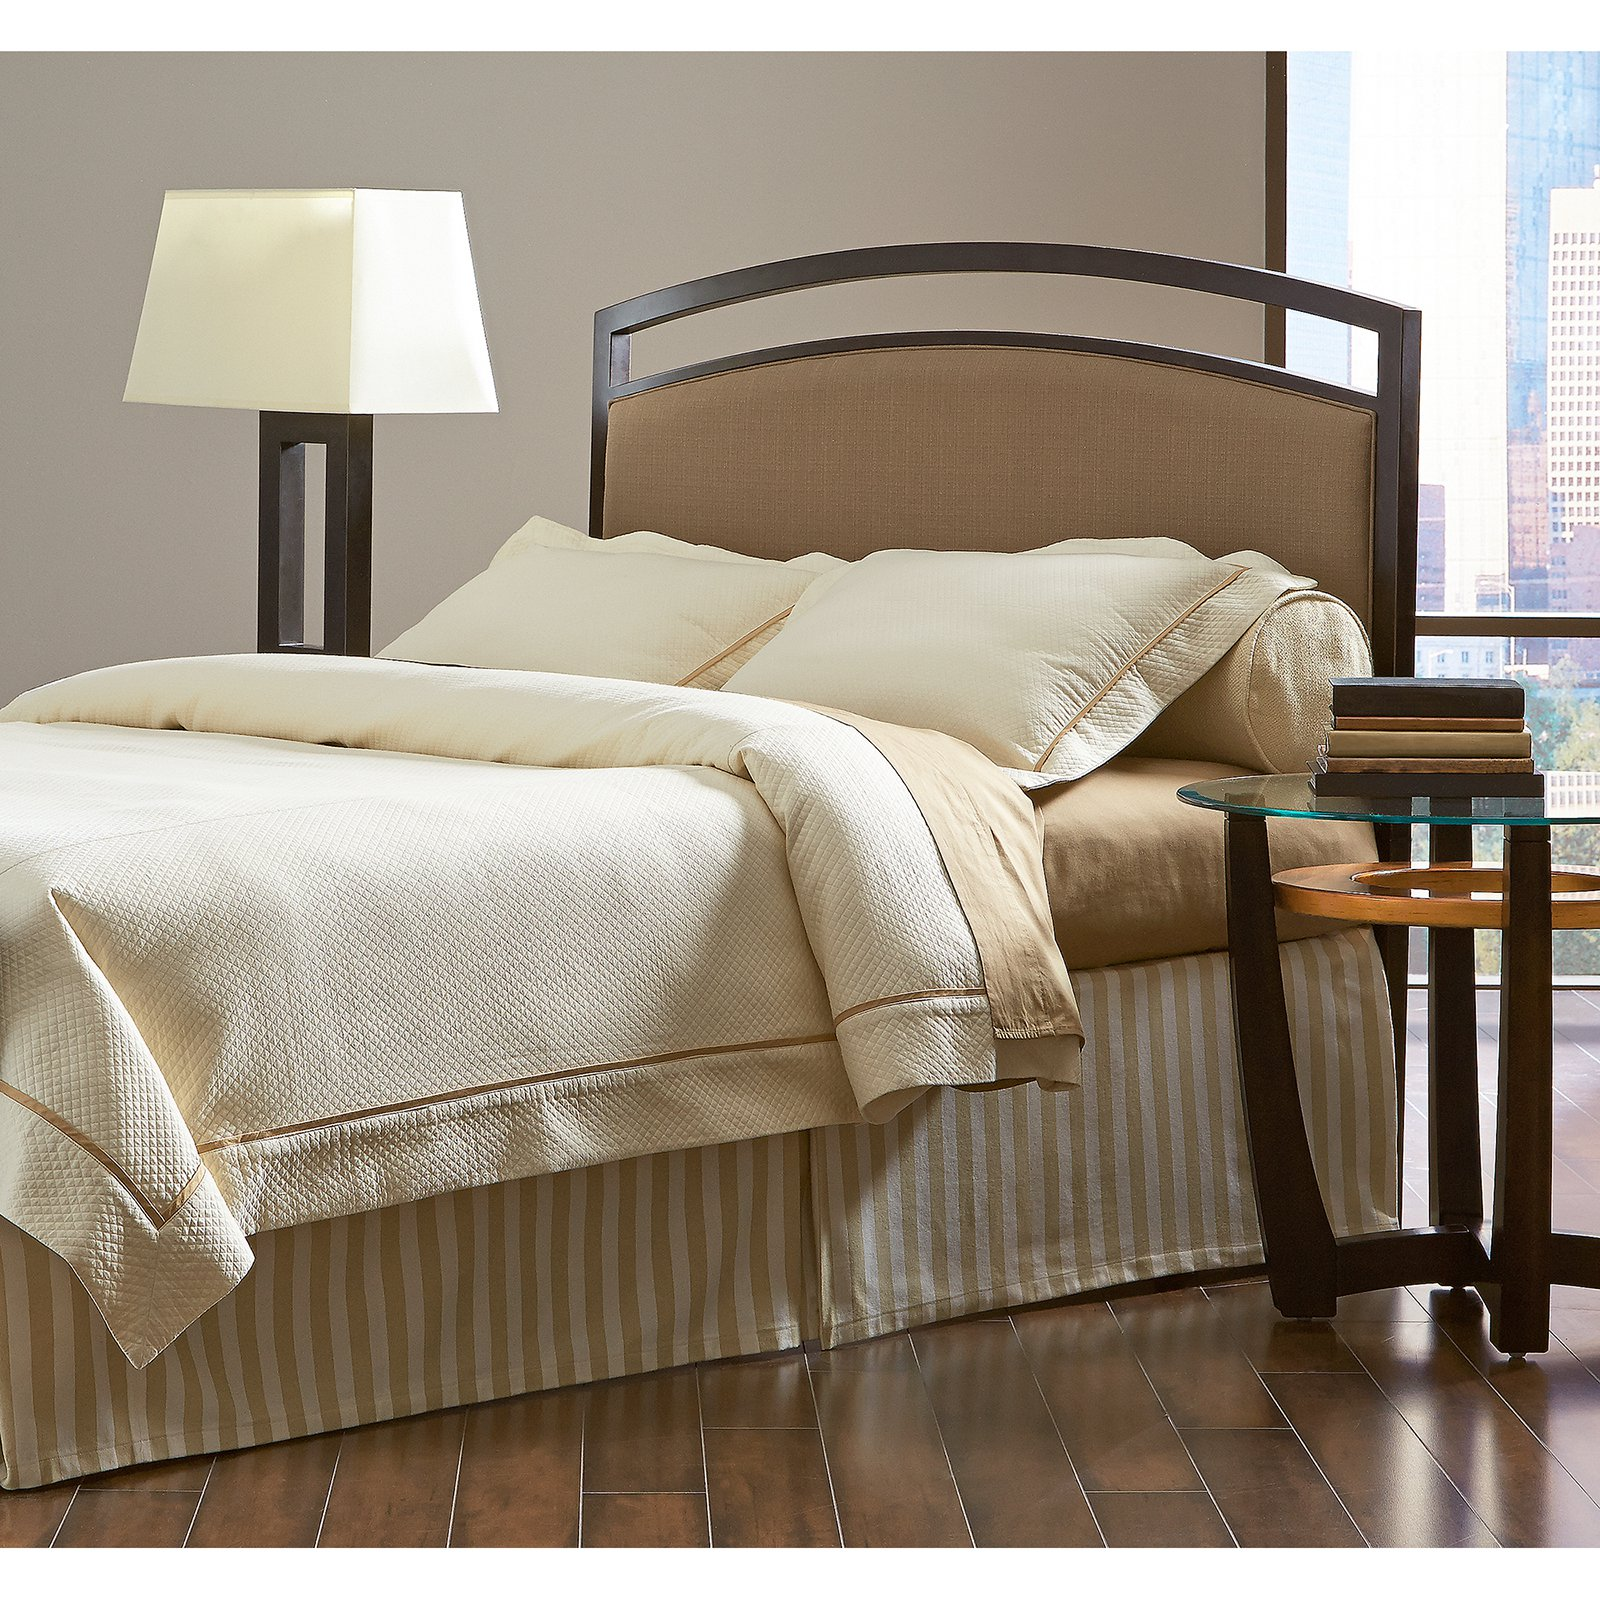 Fashion Bed Group by Leggett & Platt Gibson  Brown Sugar/Brown Sparkle Headboard, Multiple Sizes